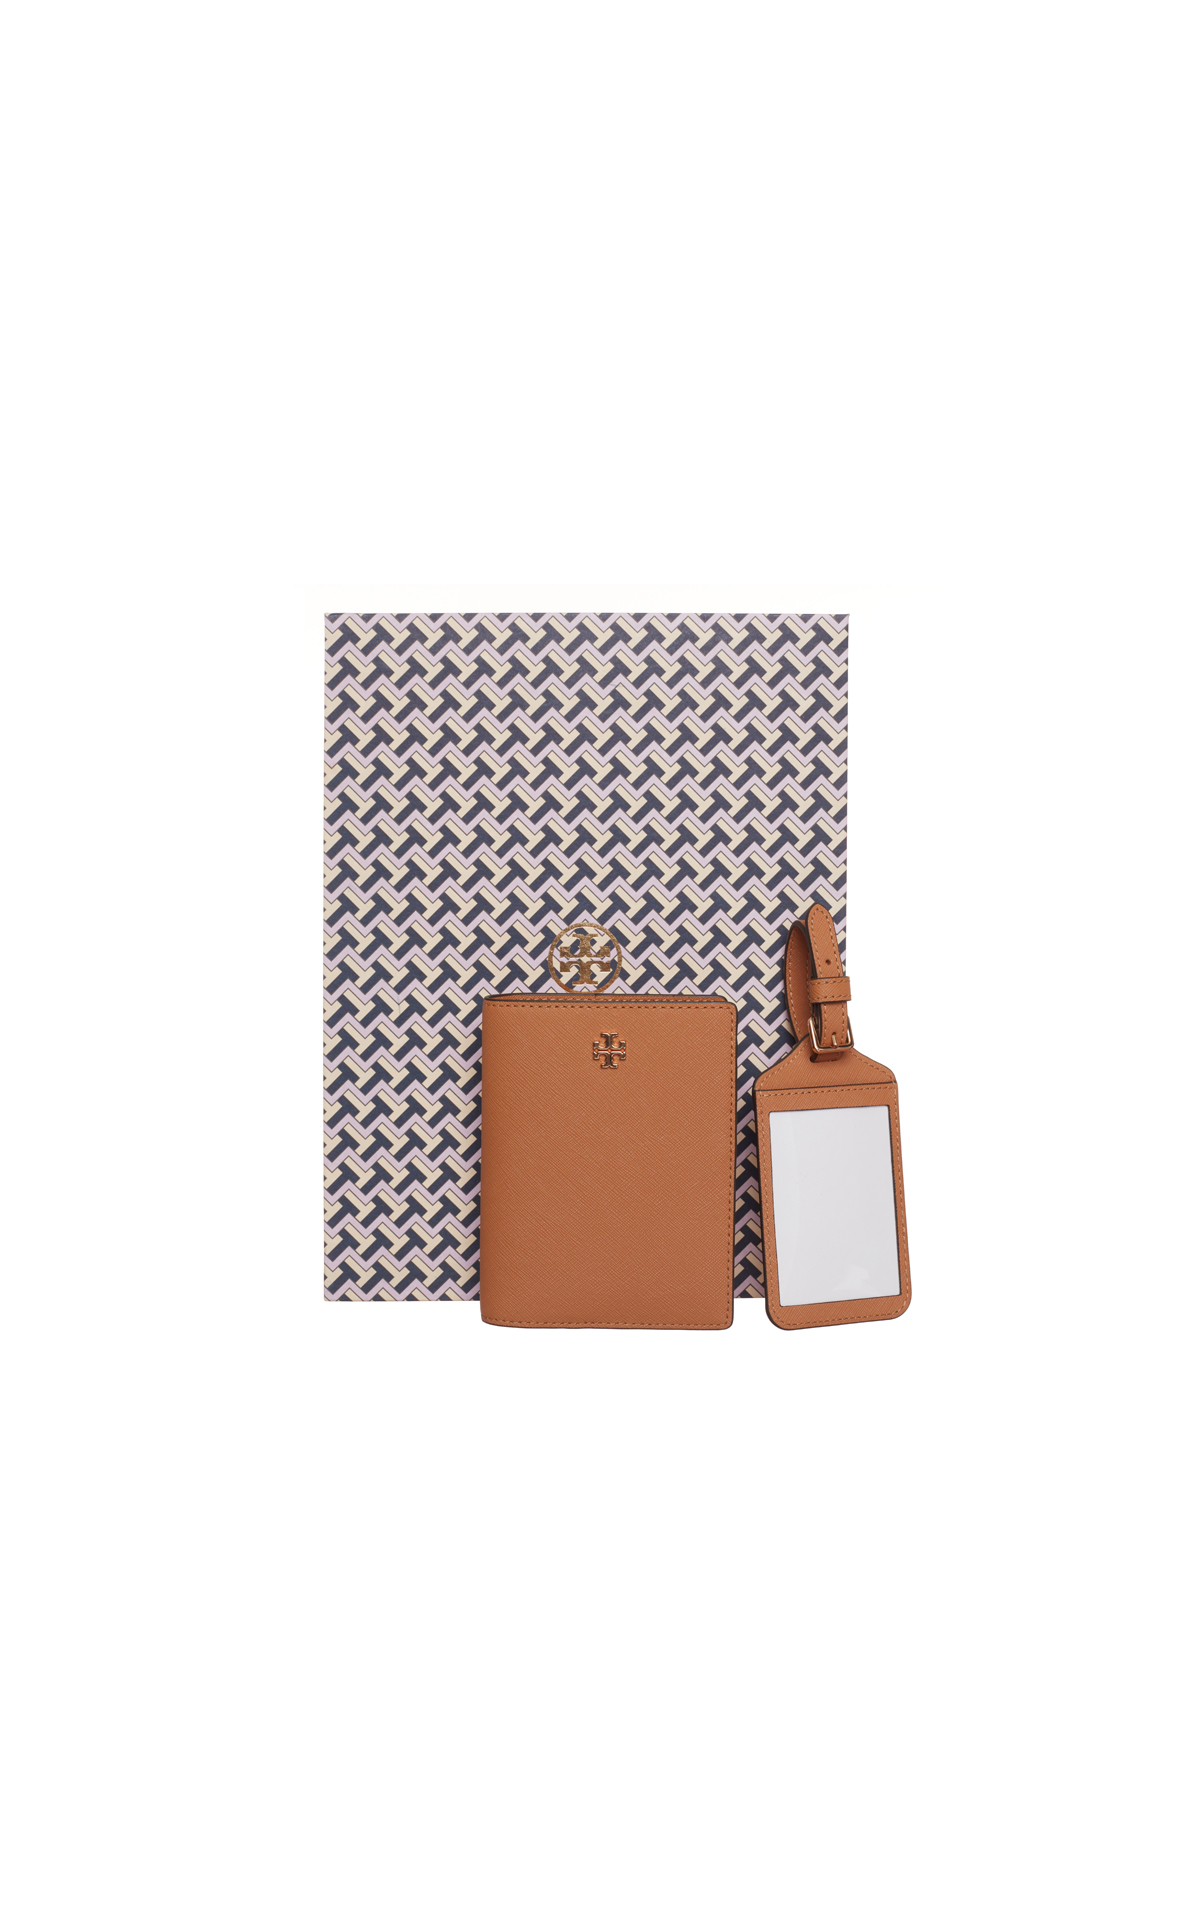 Tory Burch  Emerson gift set from Bicester Village